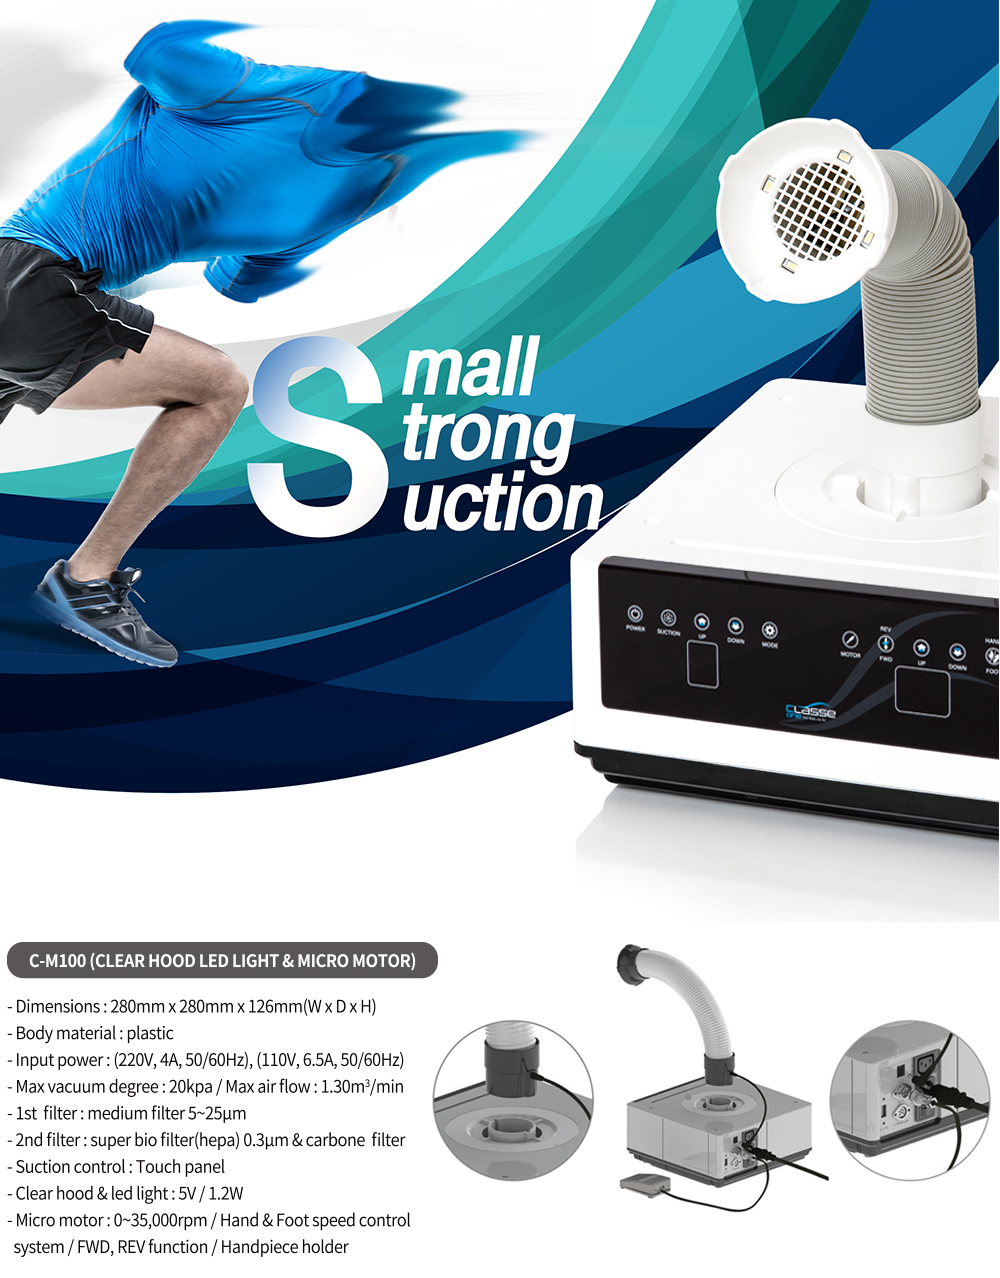 Feature of Dental Lab Dust Collector